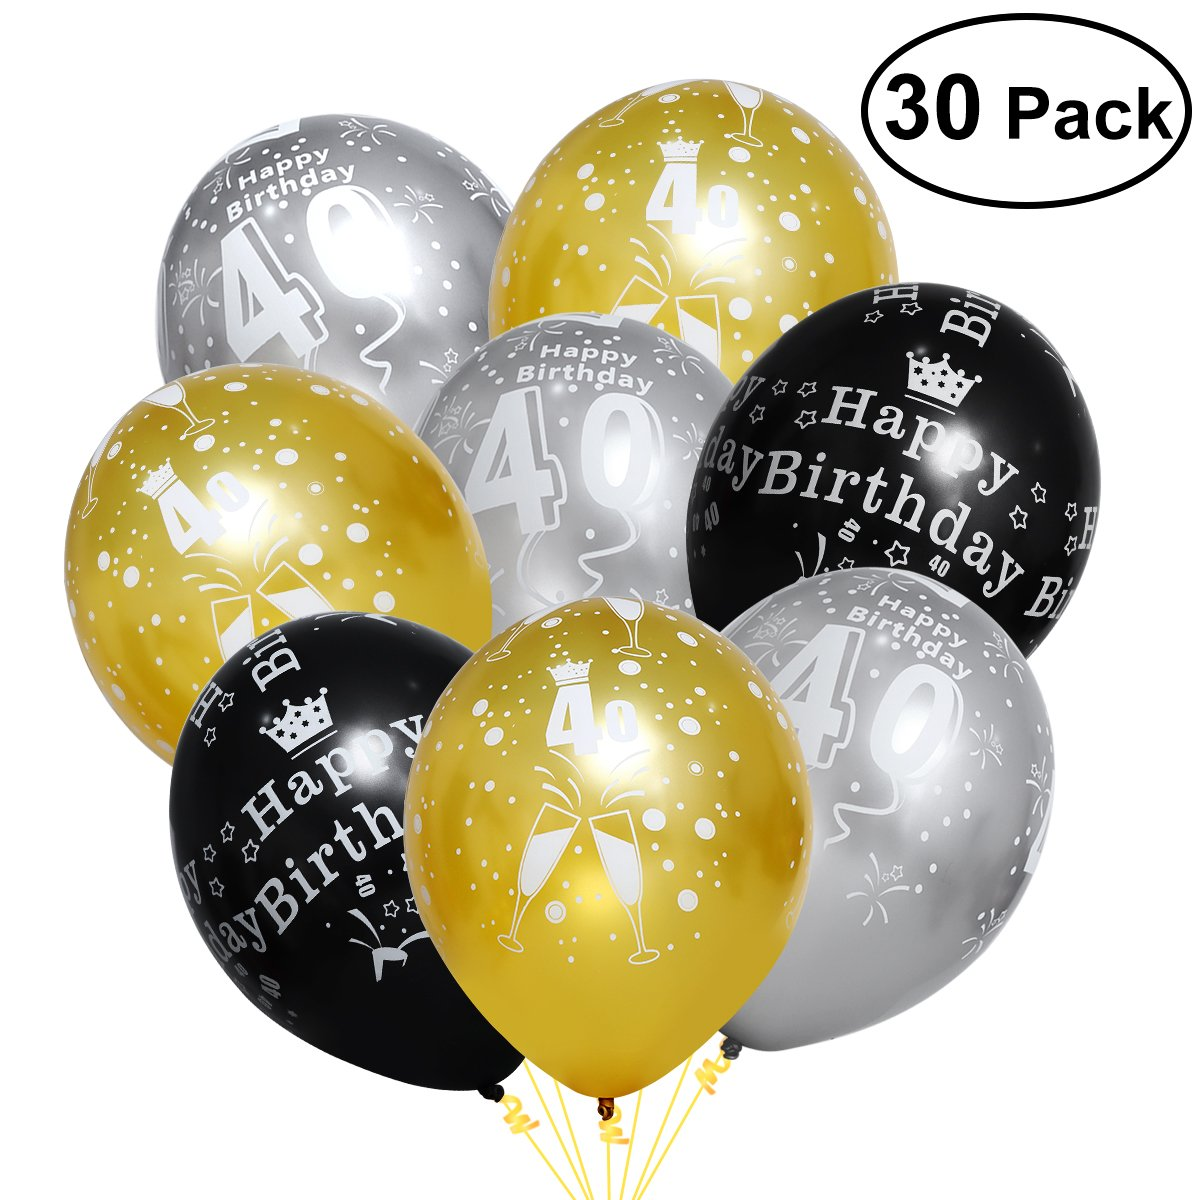 Amazon Unomor 40th Birthday Decorations With Balloons In Black Silver And Gold For Supplies 30 Pack Toys Games